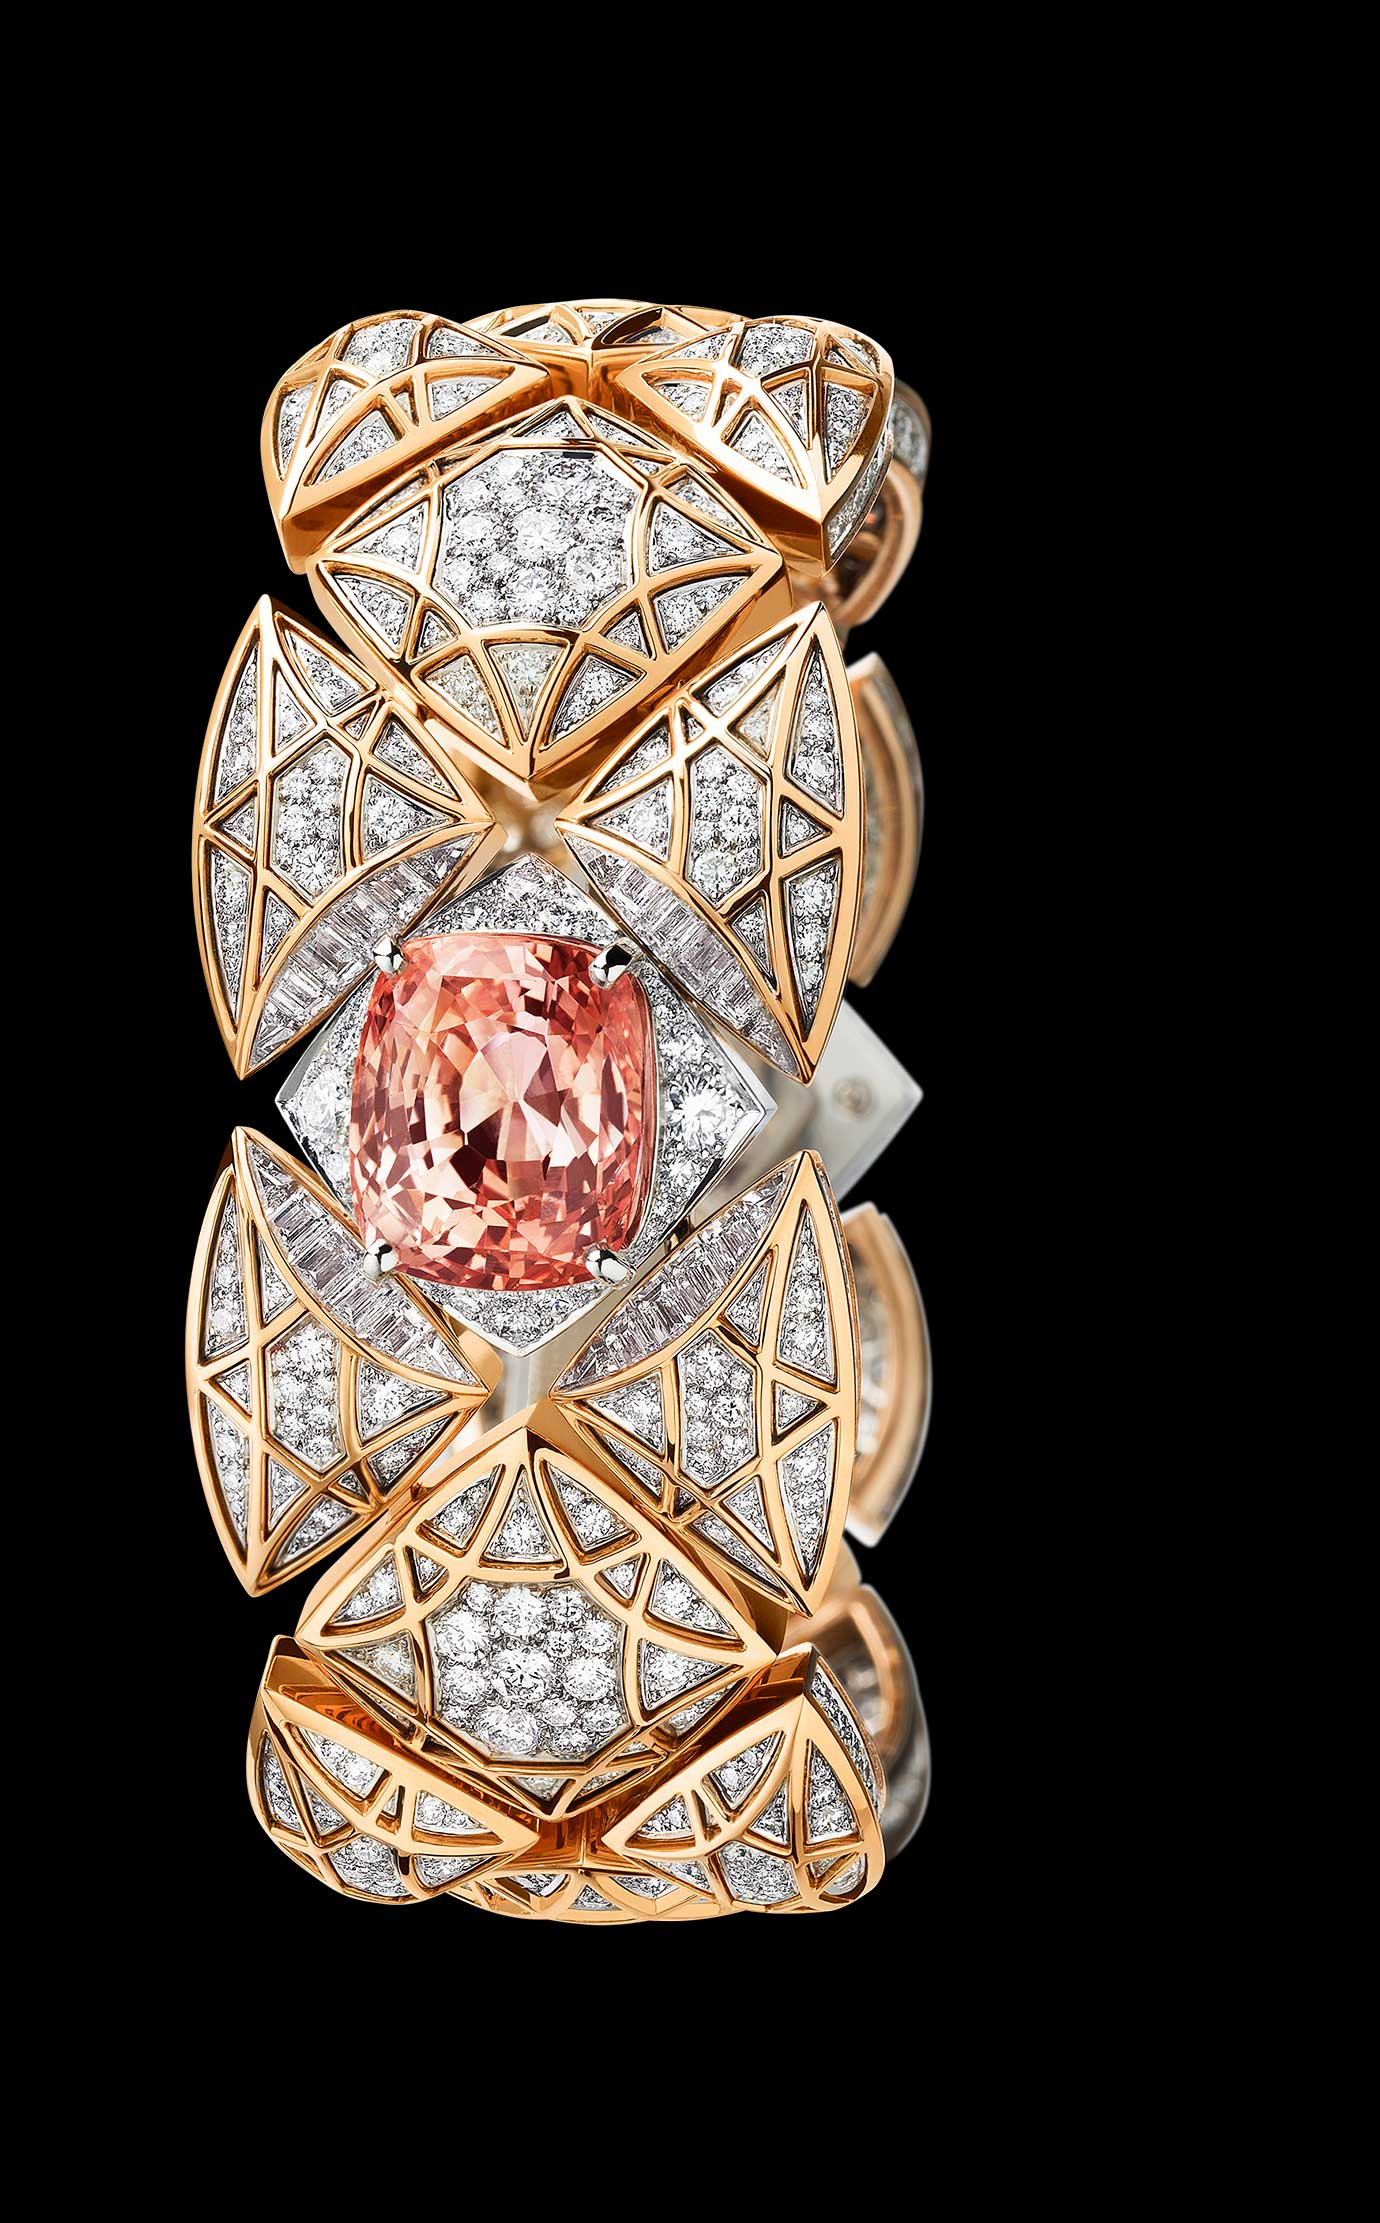 Les Eternelles de CHANEL. Secret cuff watch in white and pink gold. 17.22-carat orange-pink Padparadscha sapphire. - Front